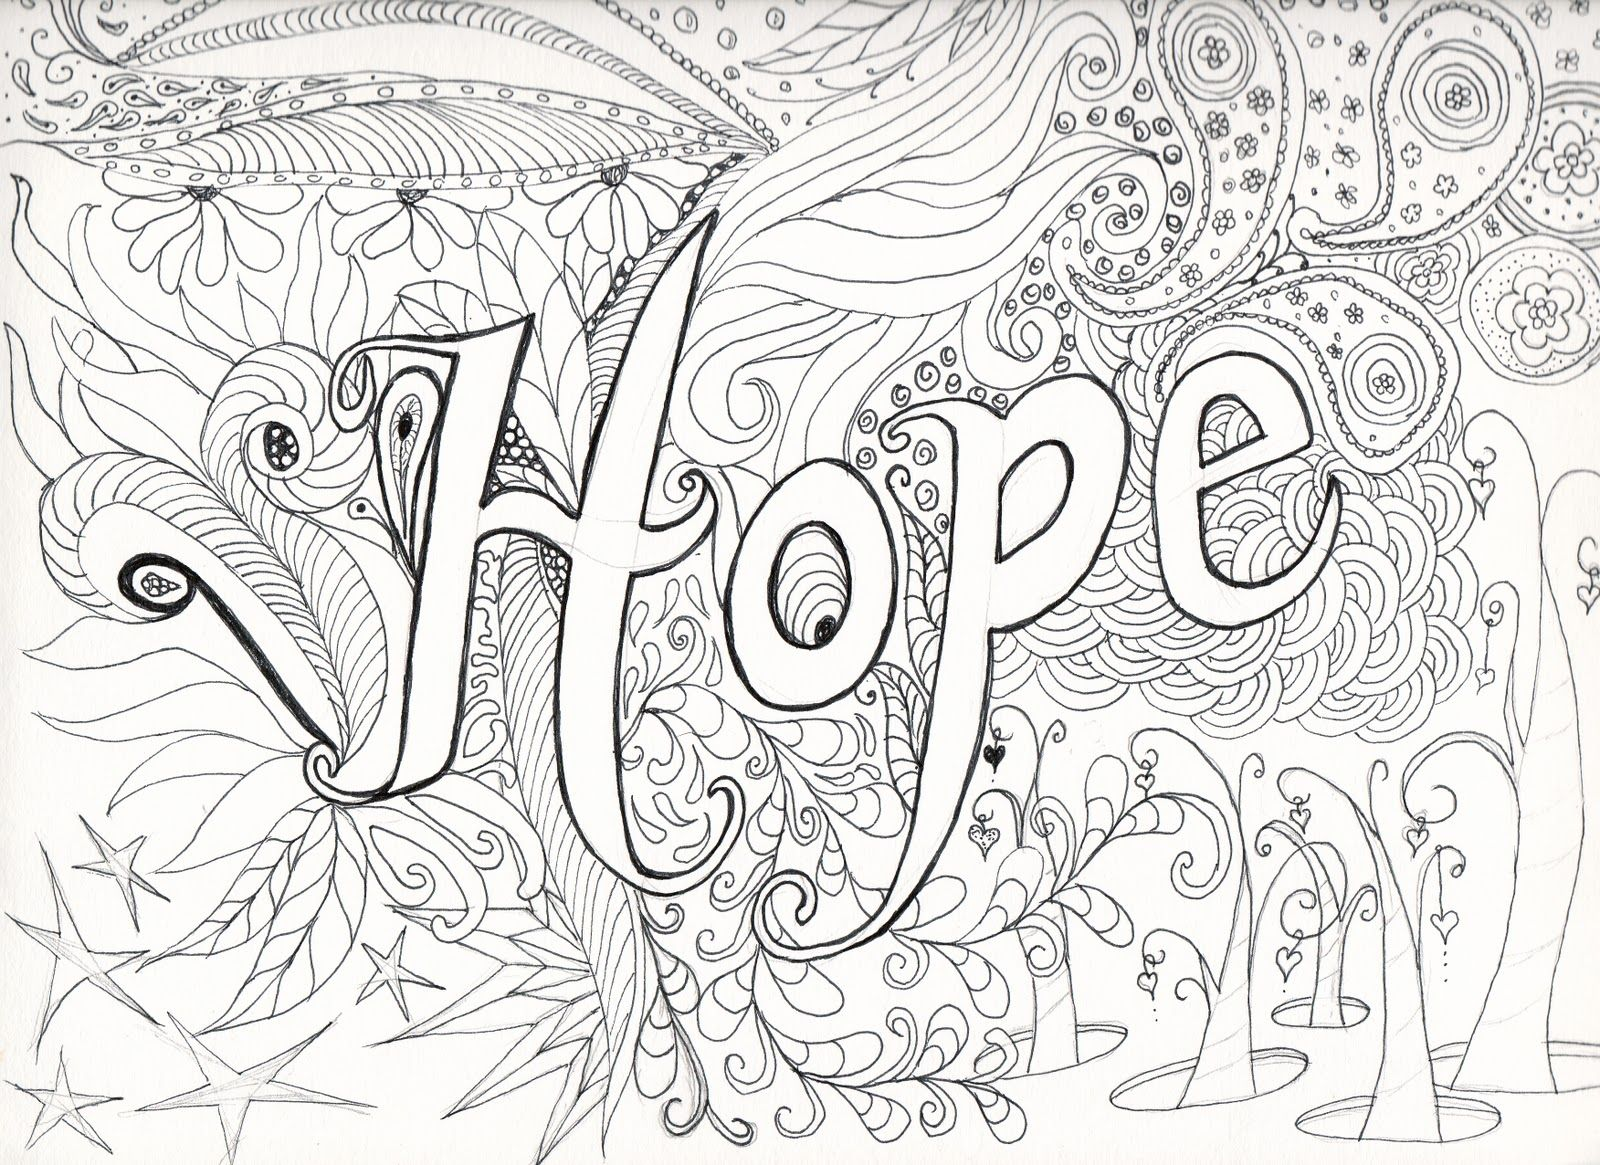 hard coloring pages Abstract coloring pages, Detailed